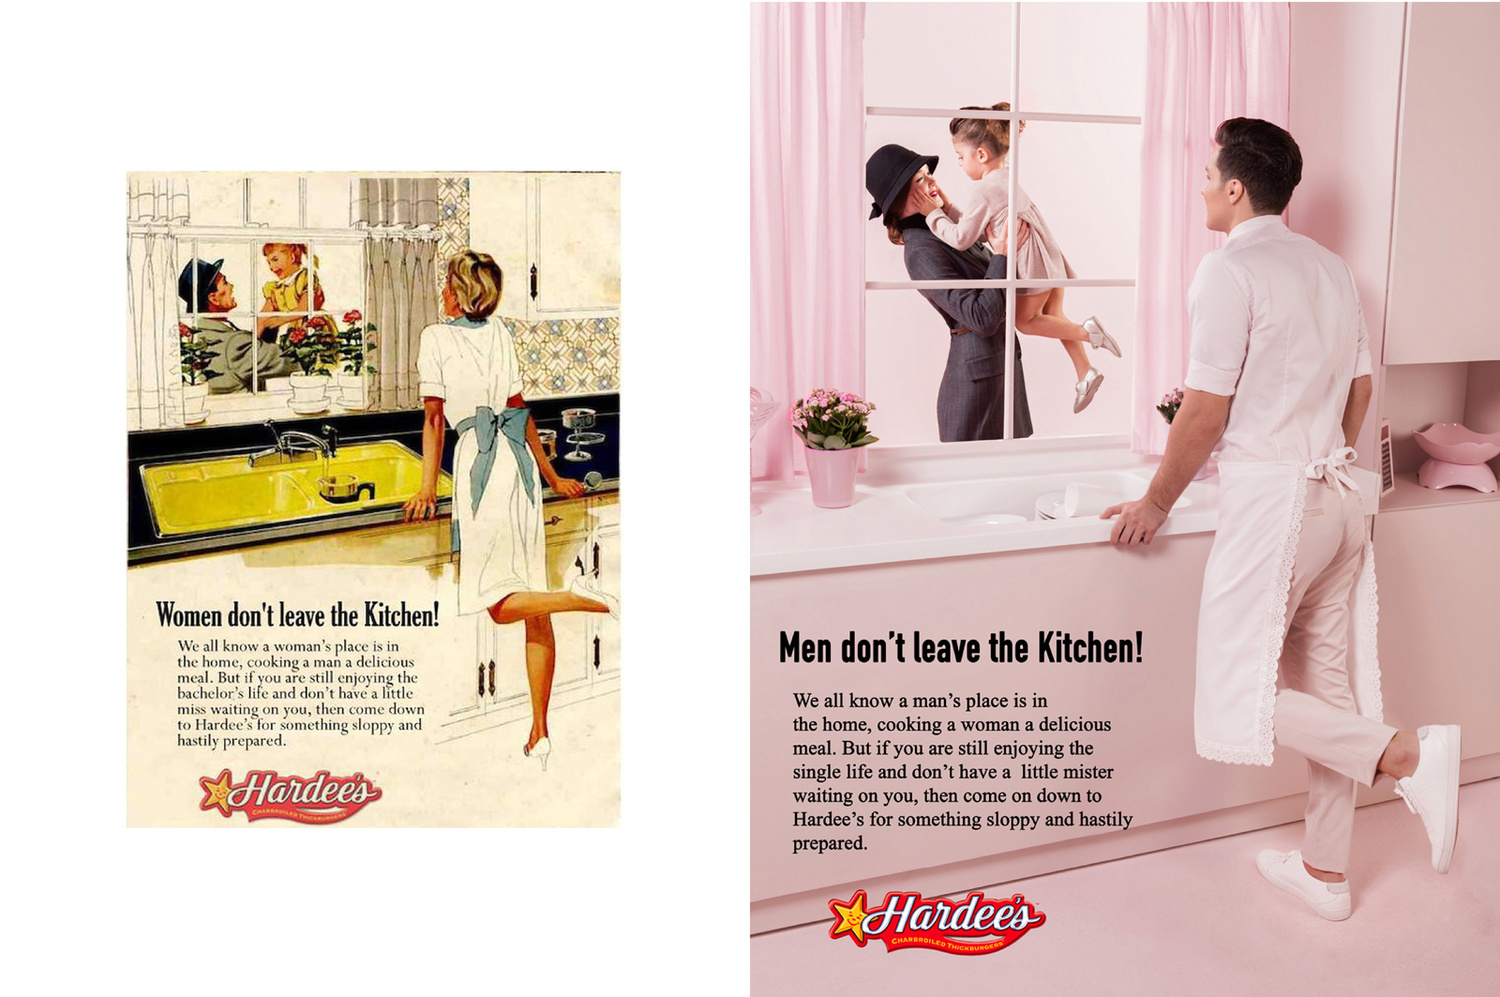 A side by side adverts of a man and a woman in the kitchen